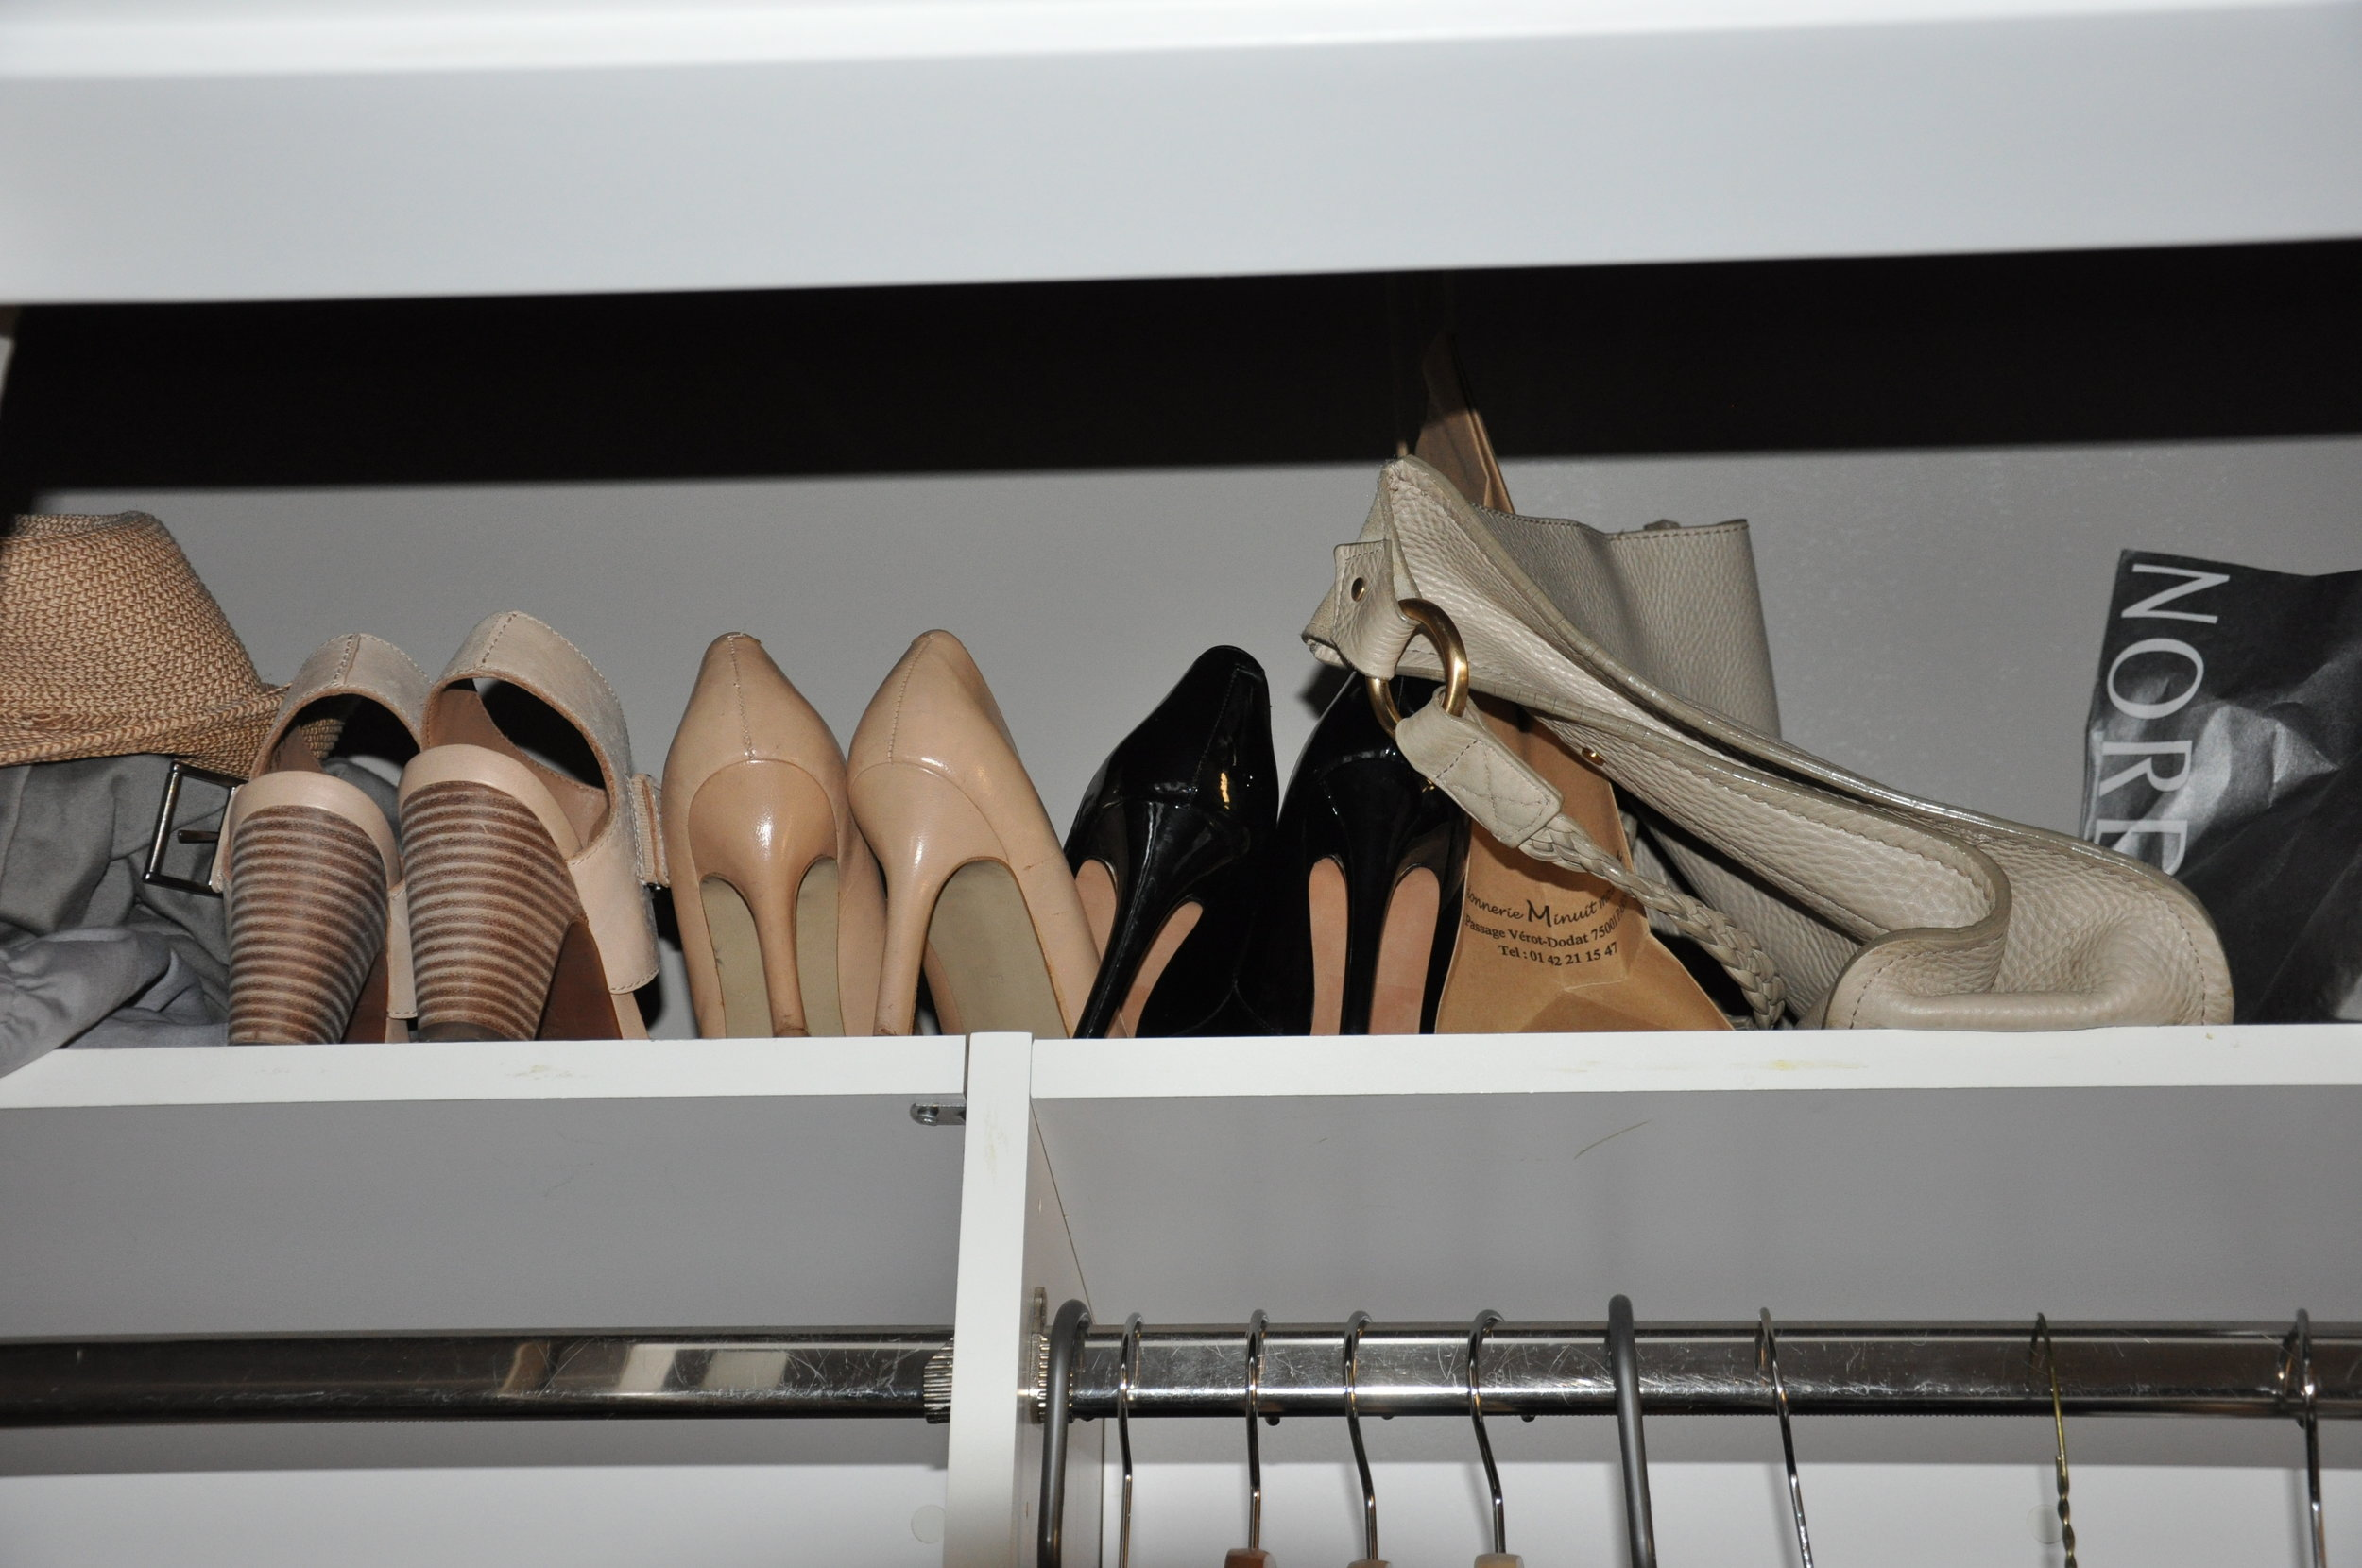 On the very top, I keep fancier, event heels.